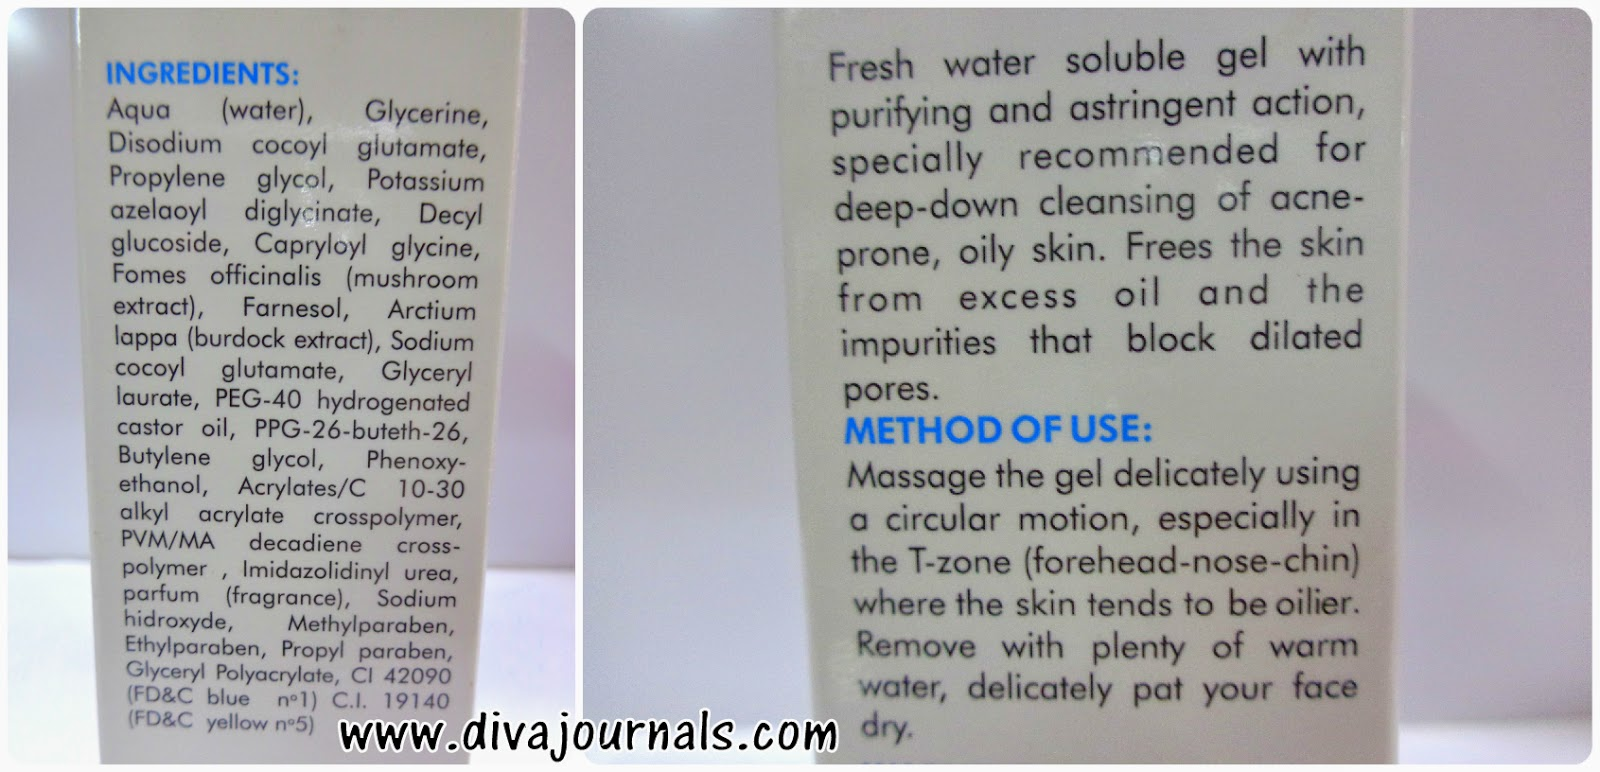 Derclean Hydro-Gel Cleanser Review